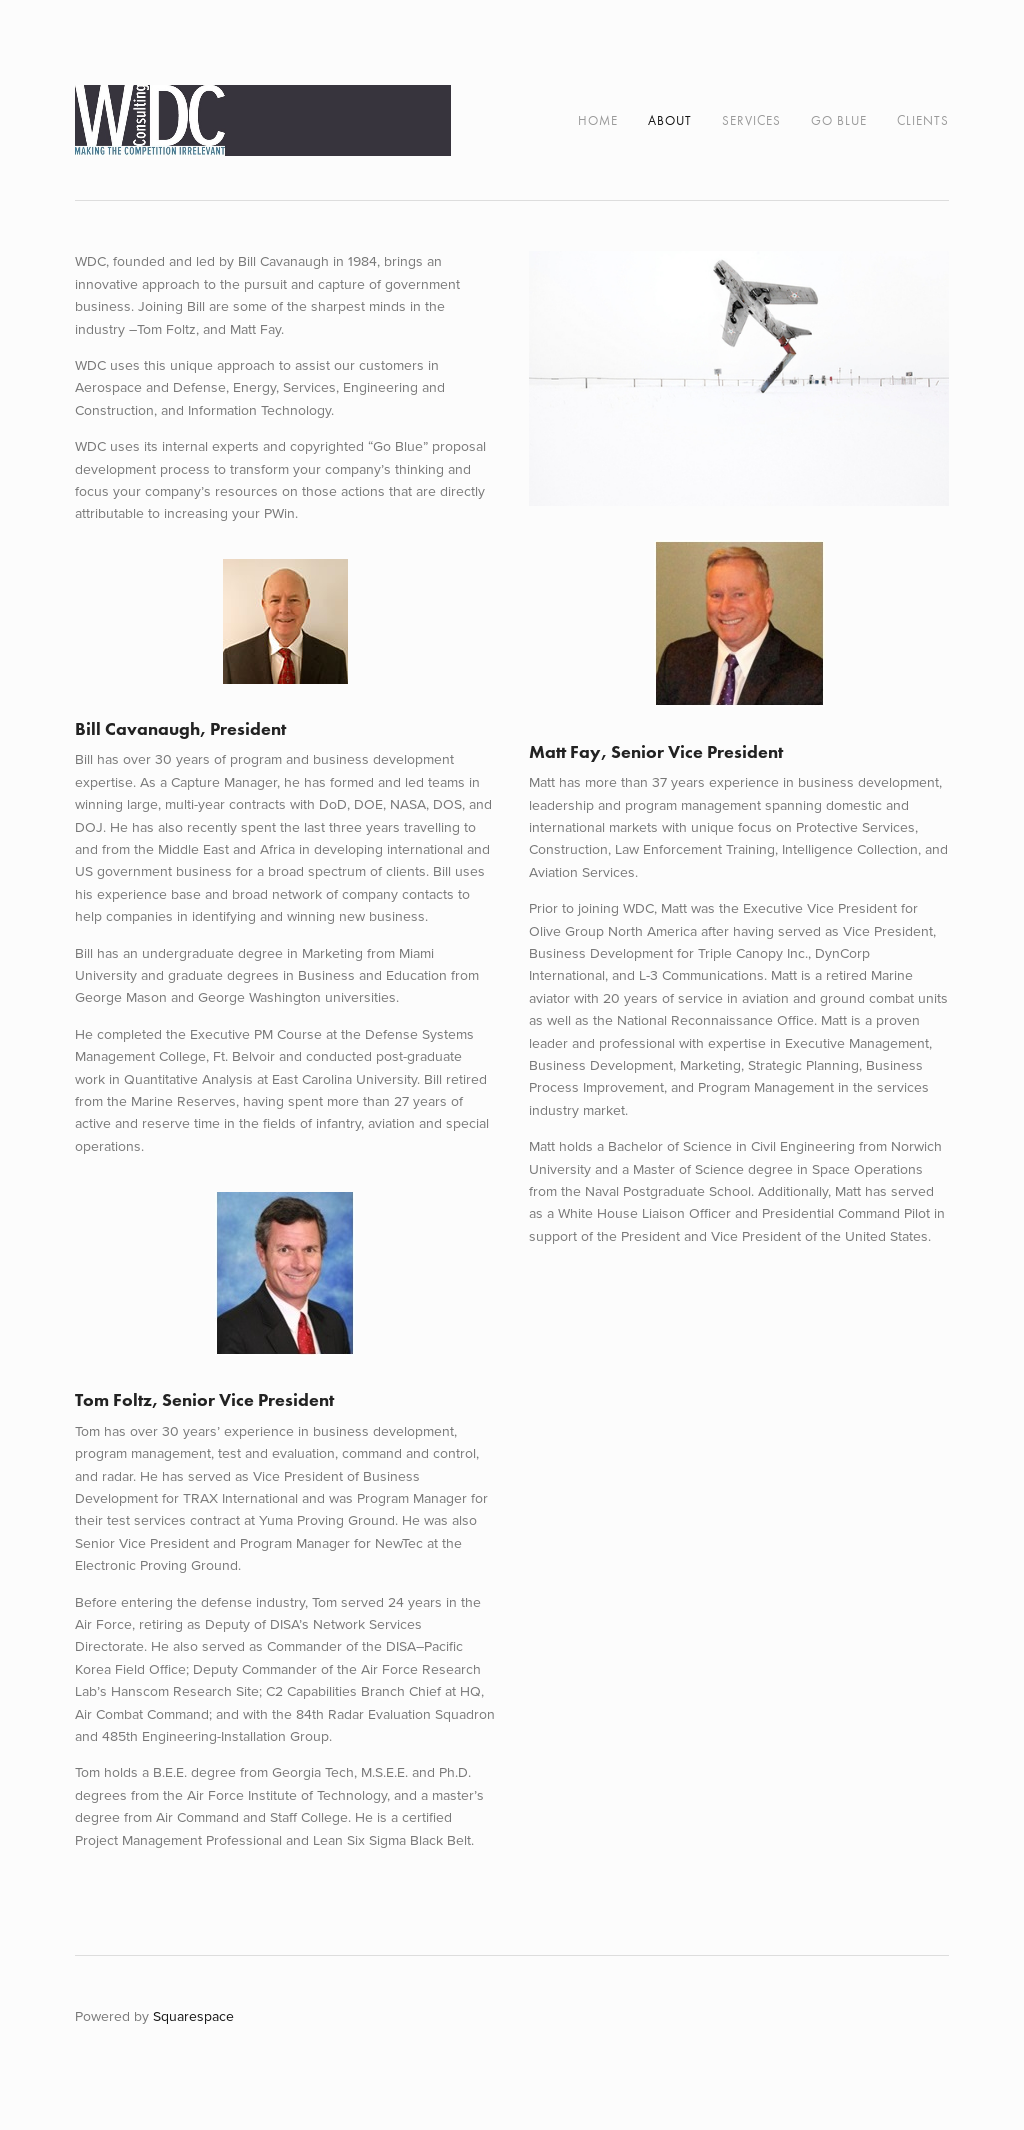 Present, Wdc Consulting Competitors, Revenue and Employees